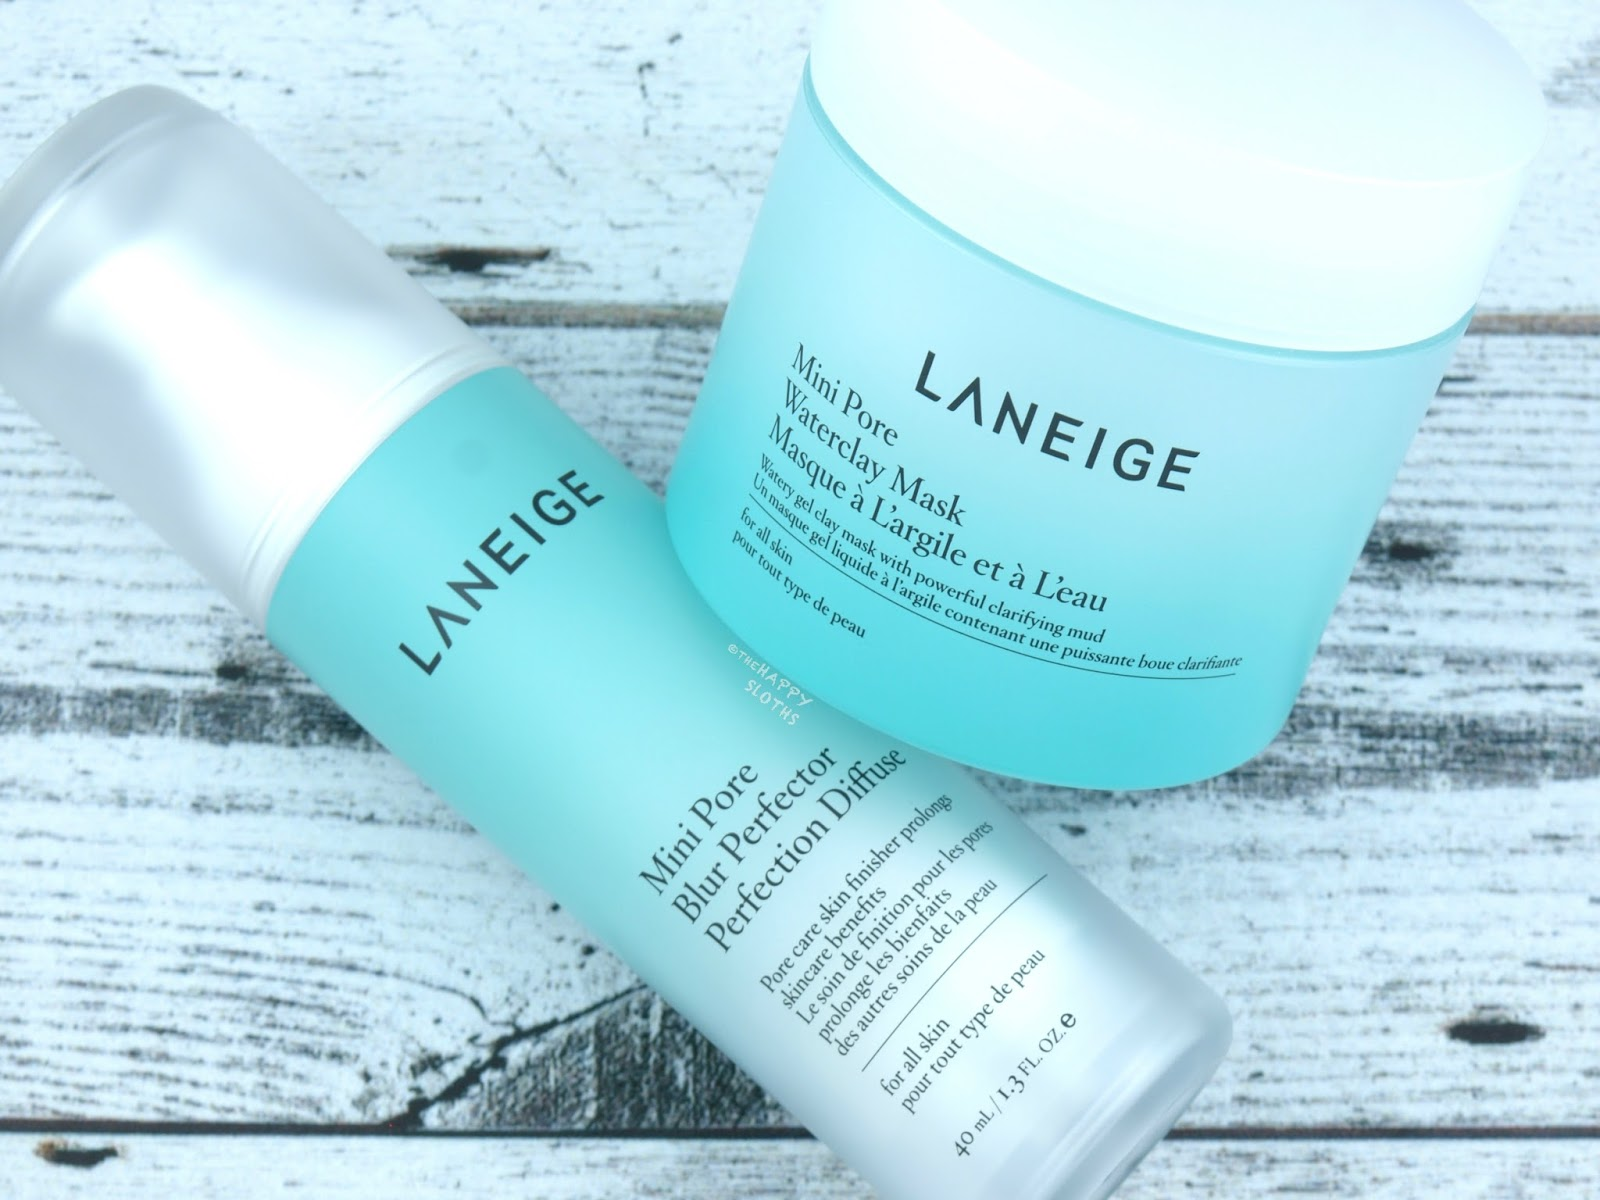 LANEIGE Mini Pore Waterclay Mask & Blur Perfector: Review